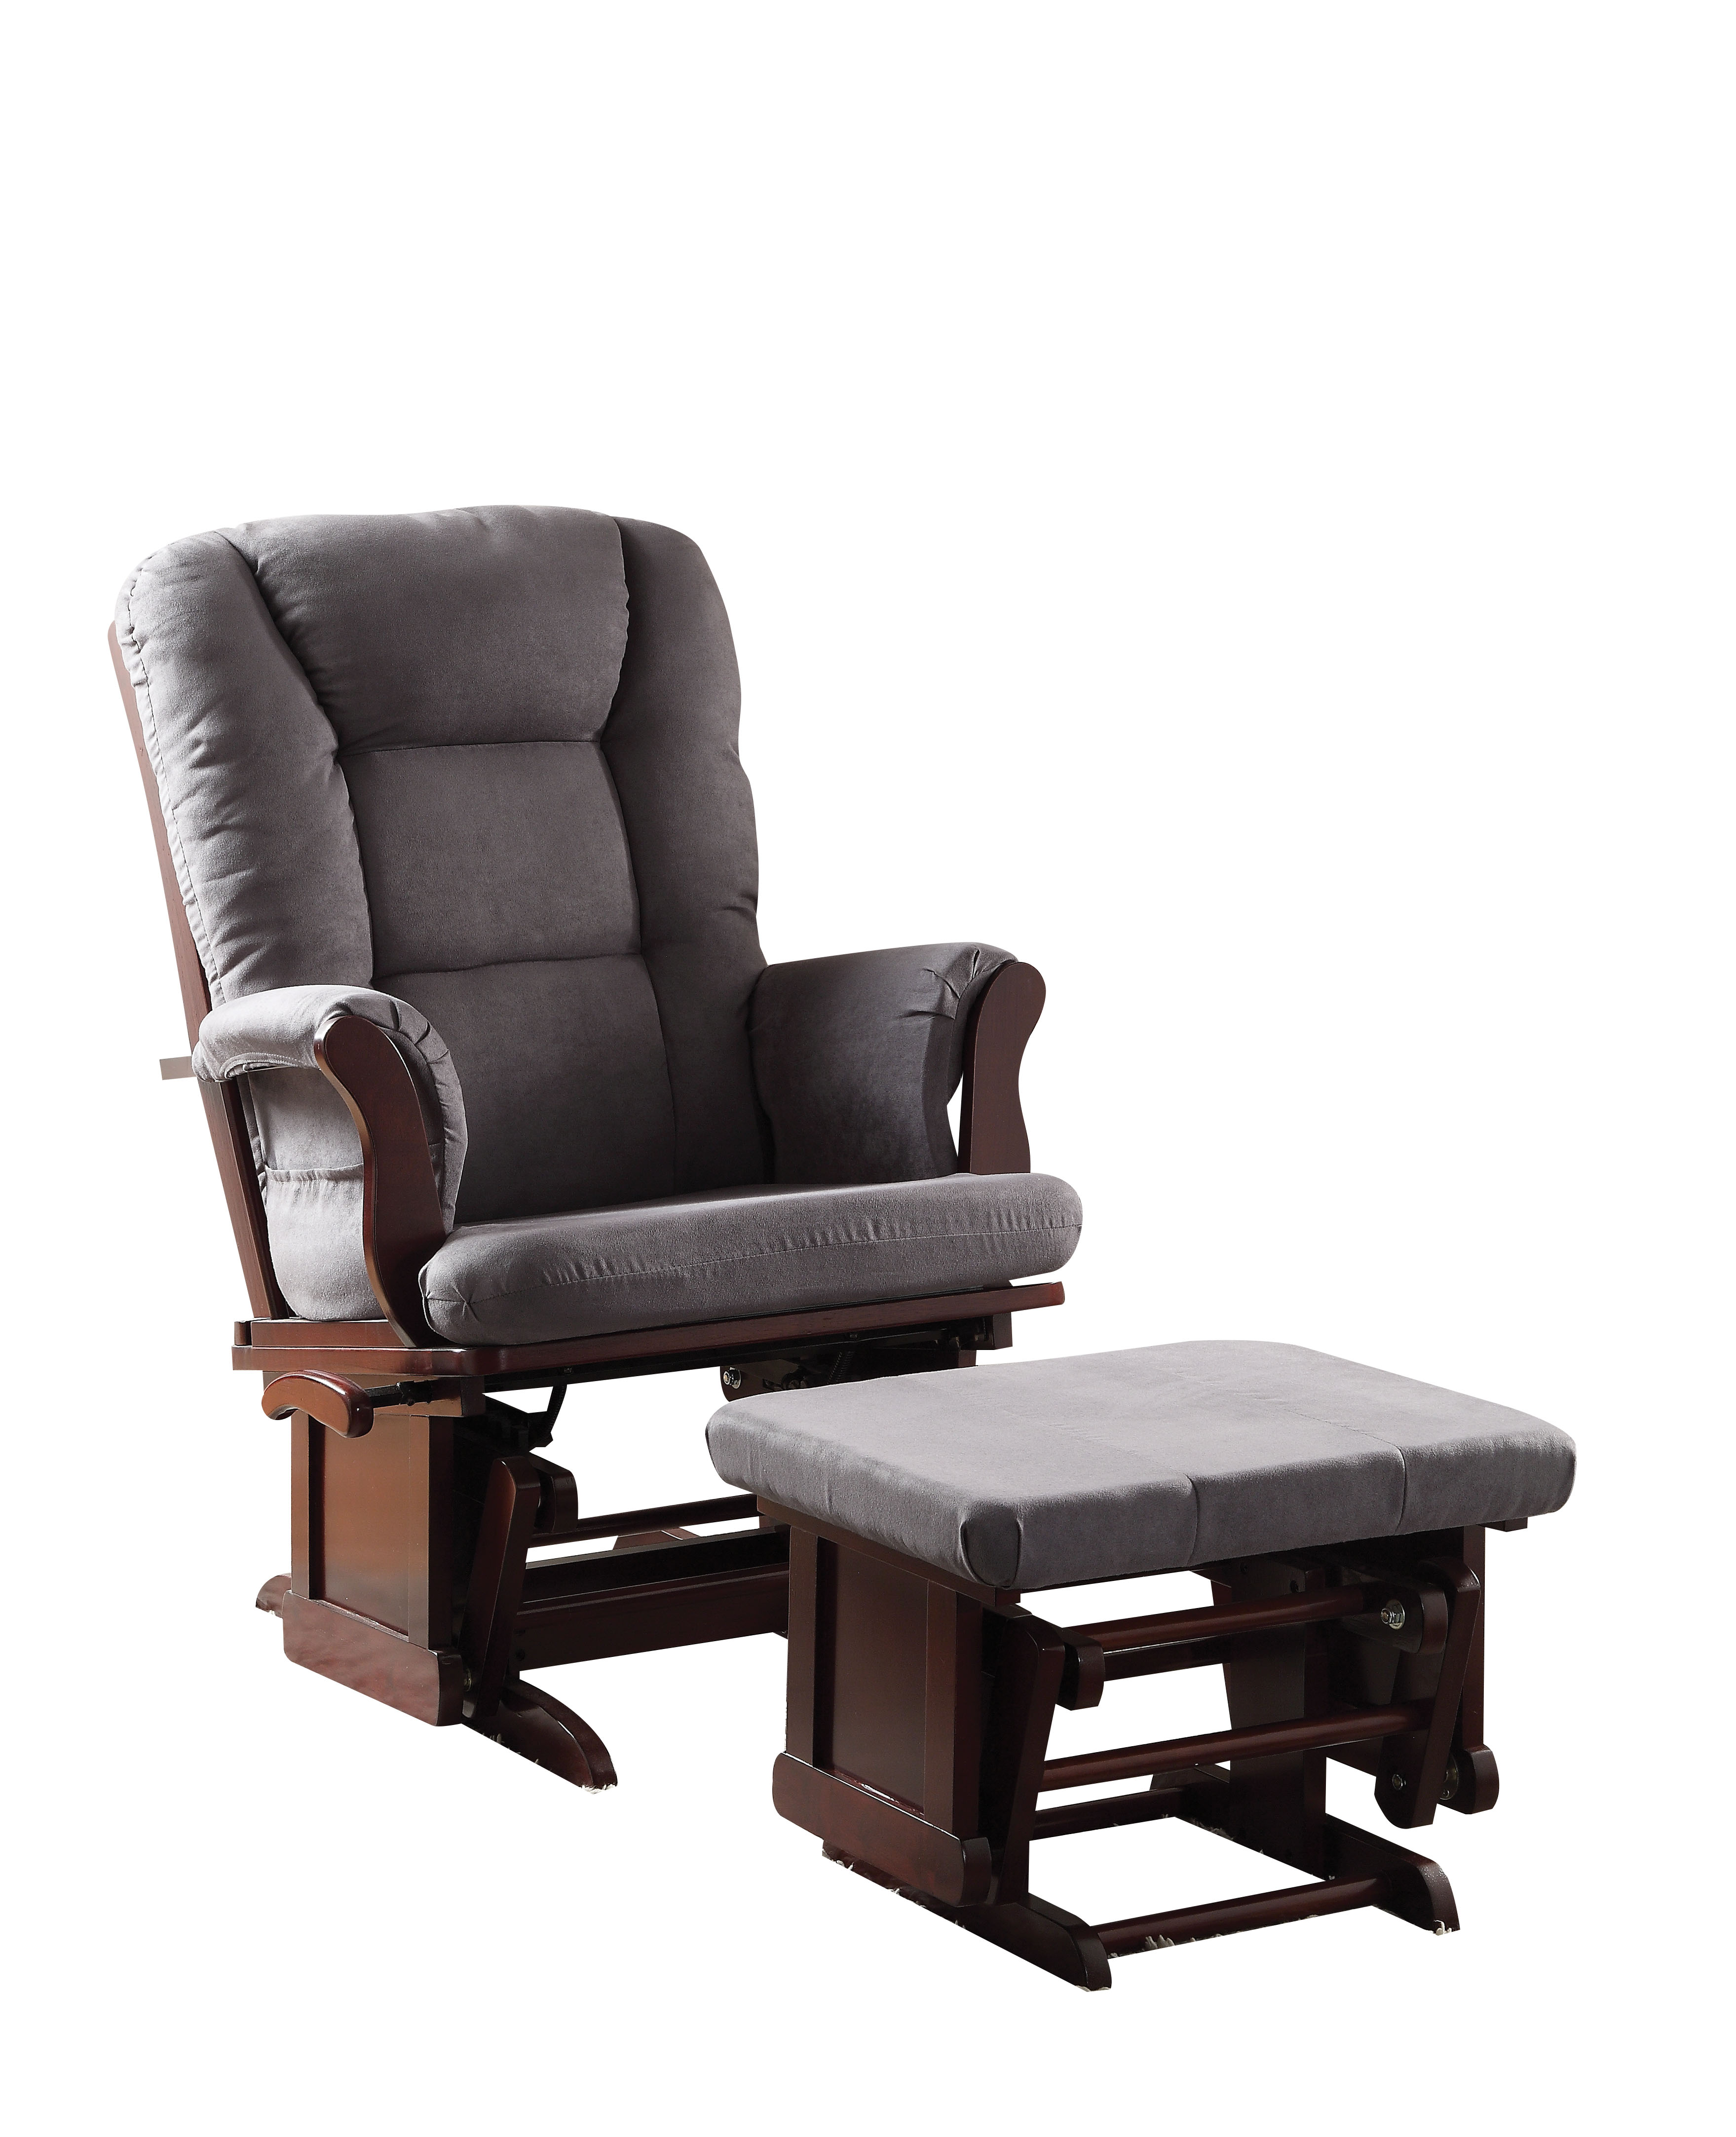 microfiber club chair with ottoman antique victorian chairs 2 piece pack glider gray cherry